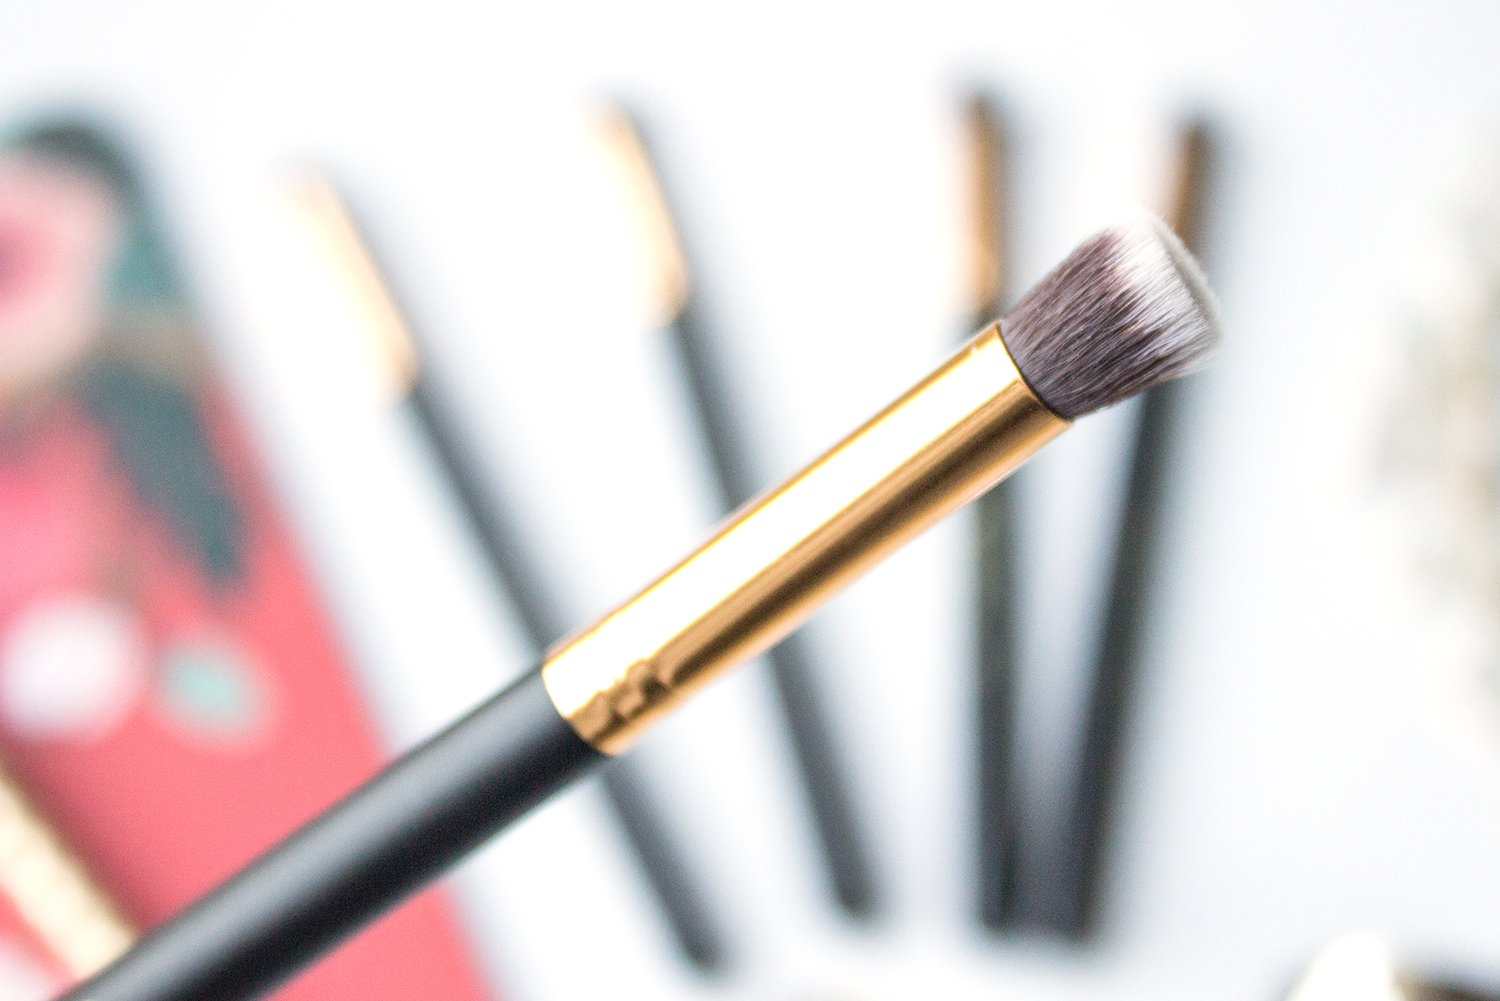 2250d938f425a 120 Small Flat Blending Face Brush. This mini version of the 116 brush is  excellent for applying concealer to targeted areas of the face.